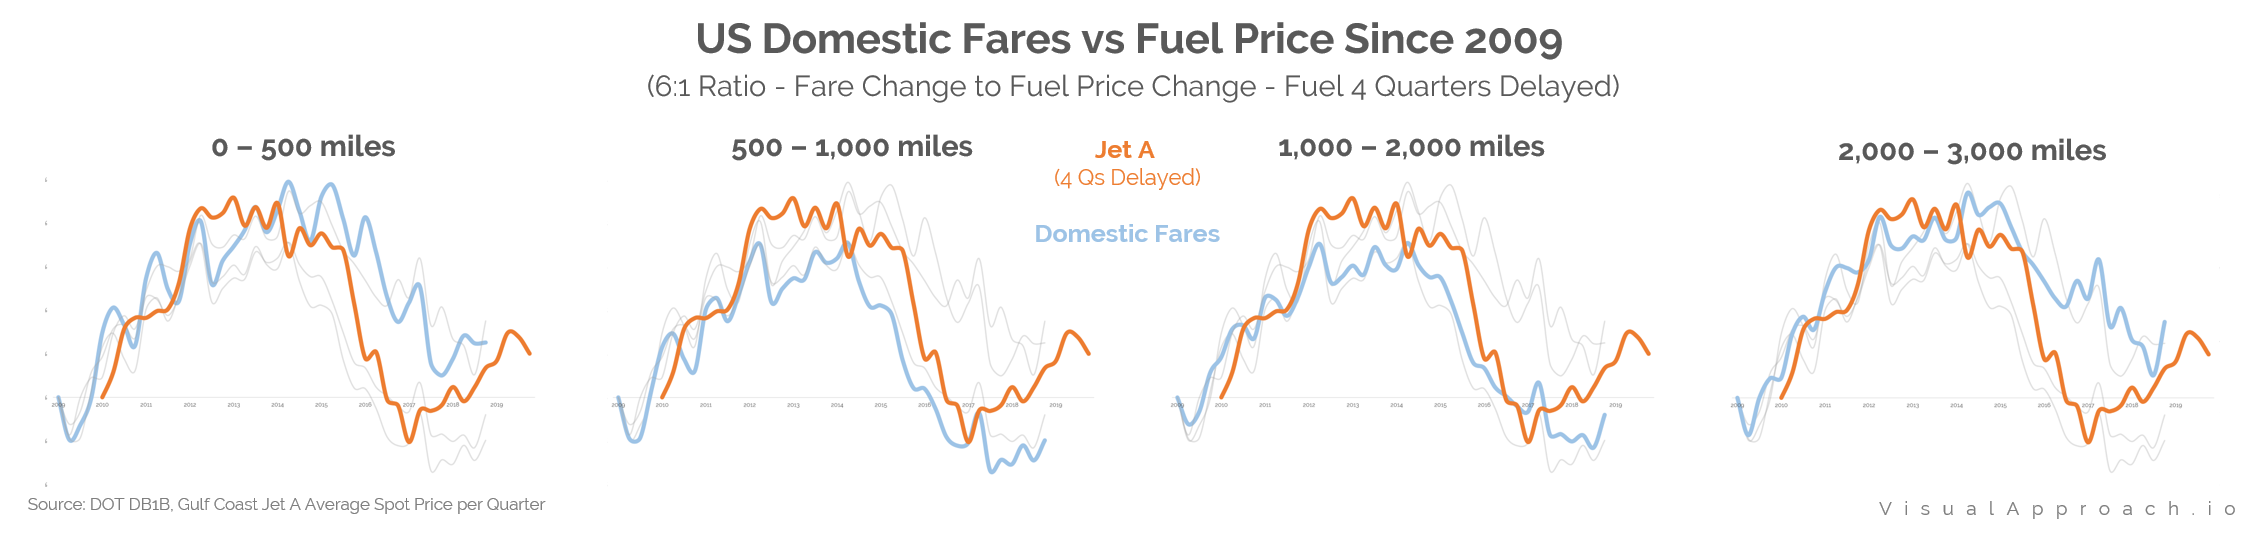 Domestic Fares vs Fuel Price Changes by Stage Length